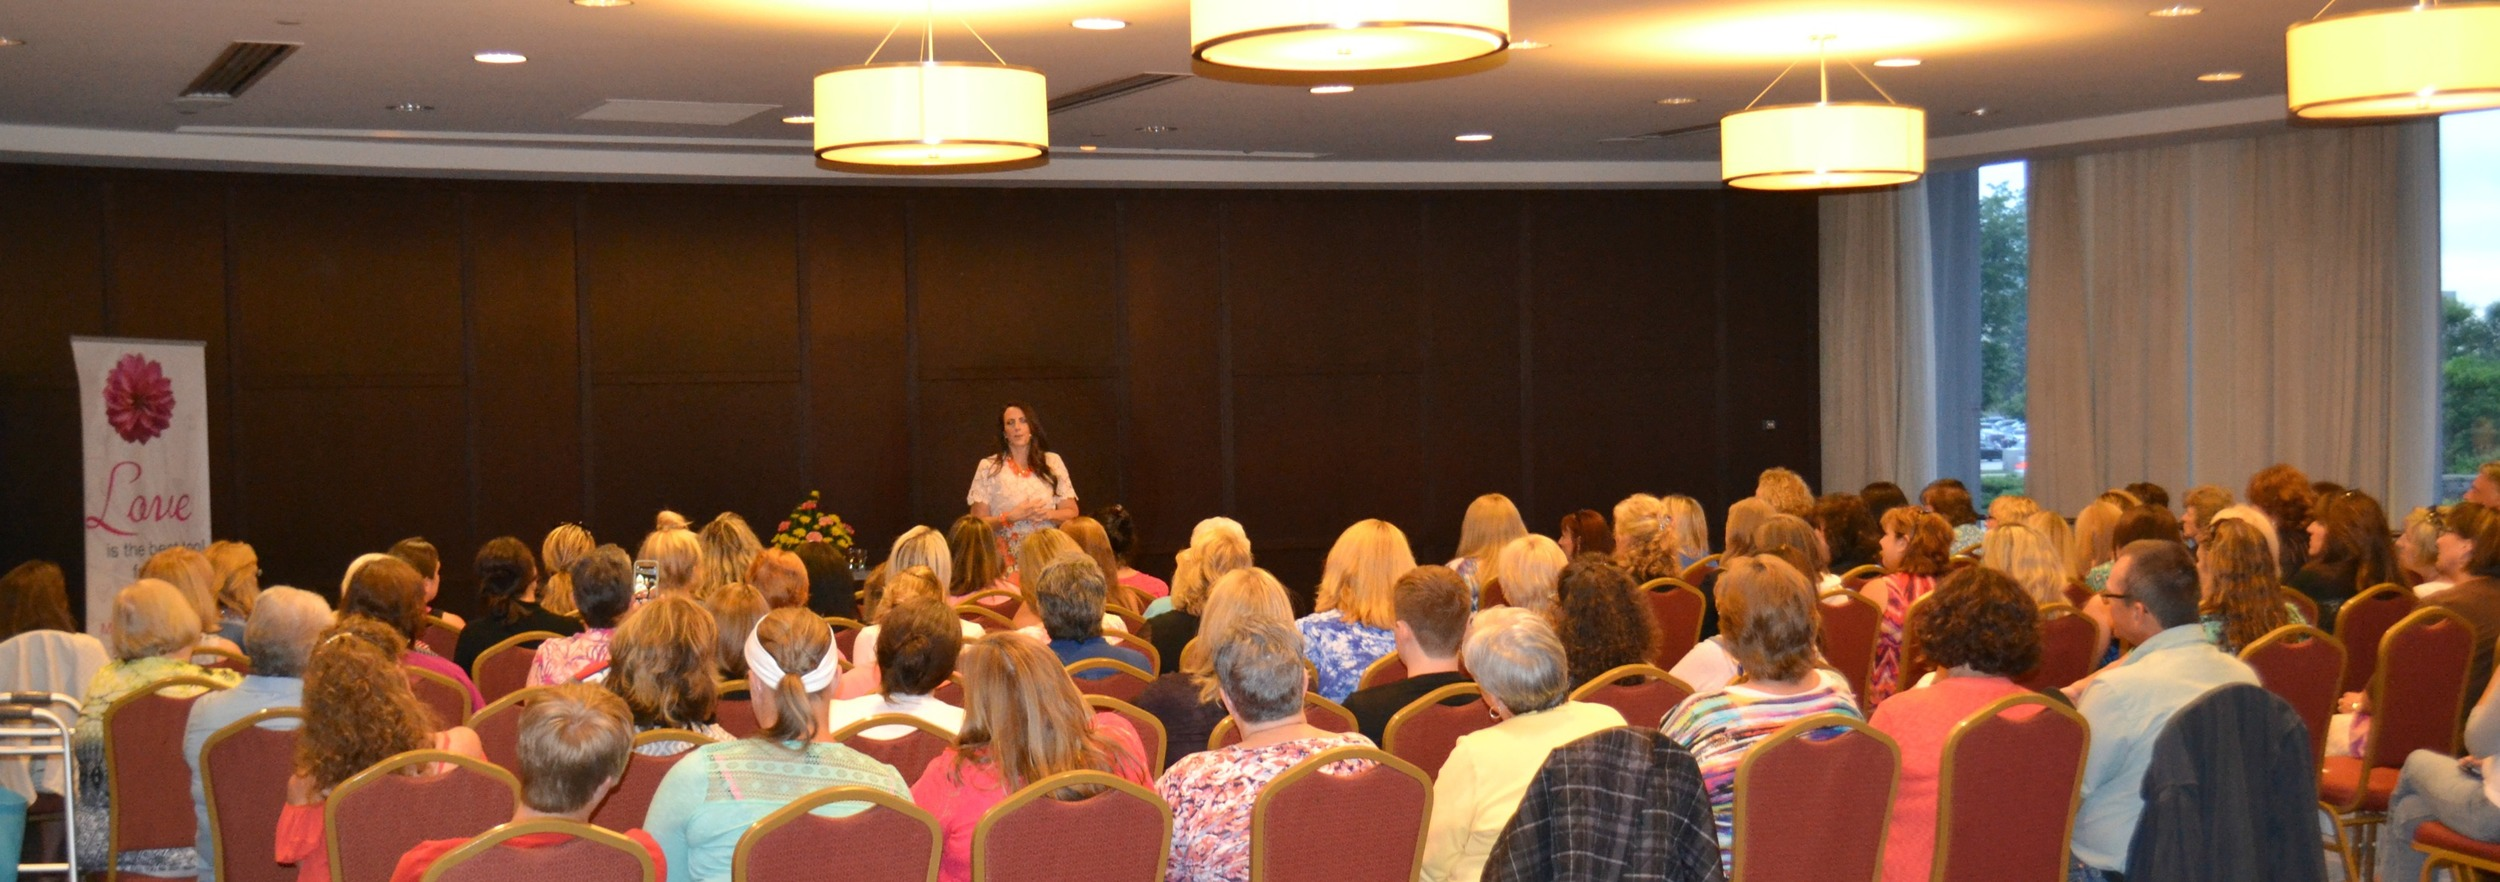 Seattle, WA - Bellevue, Renton, Tacoma - Psychic Medium Readings Audience Events Live Sessions